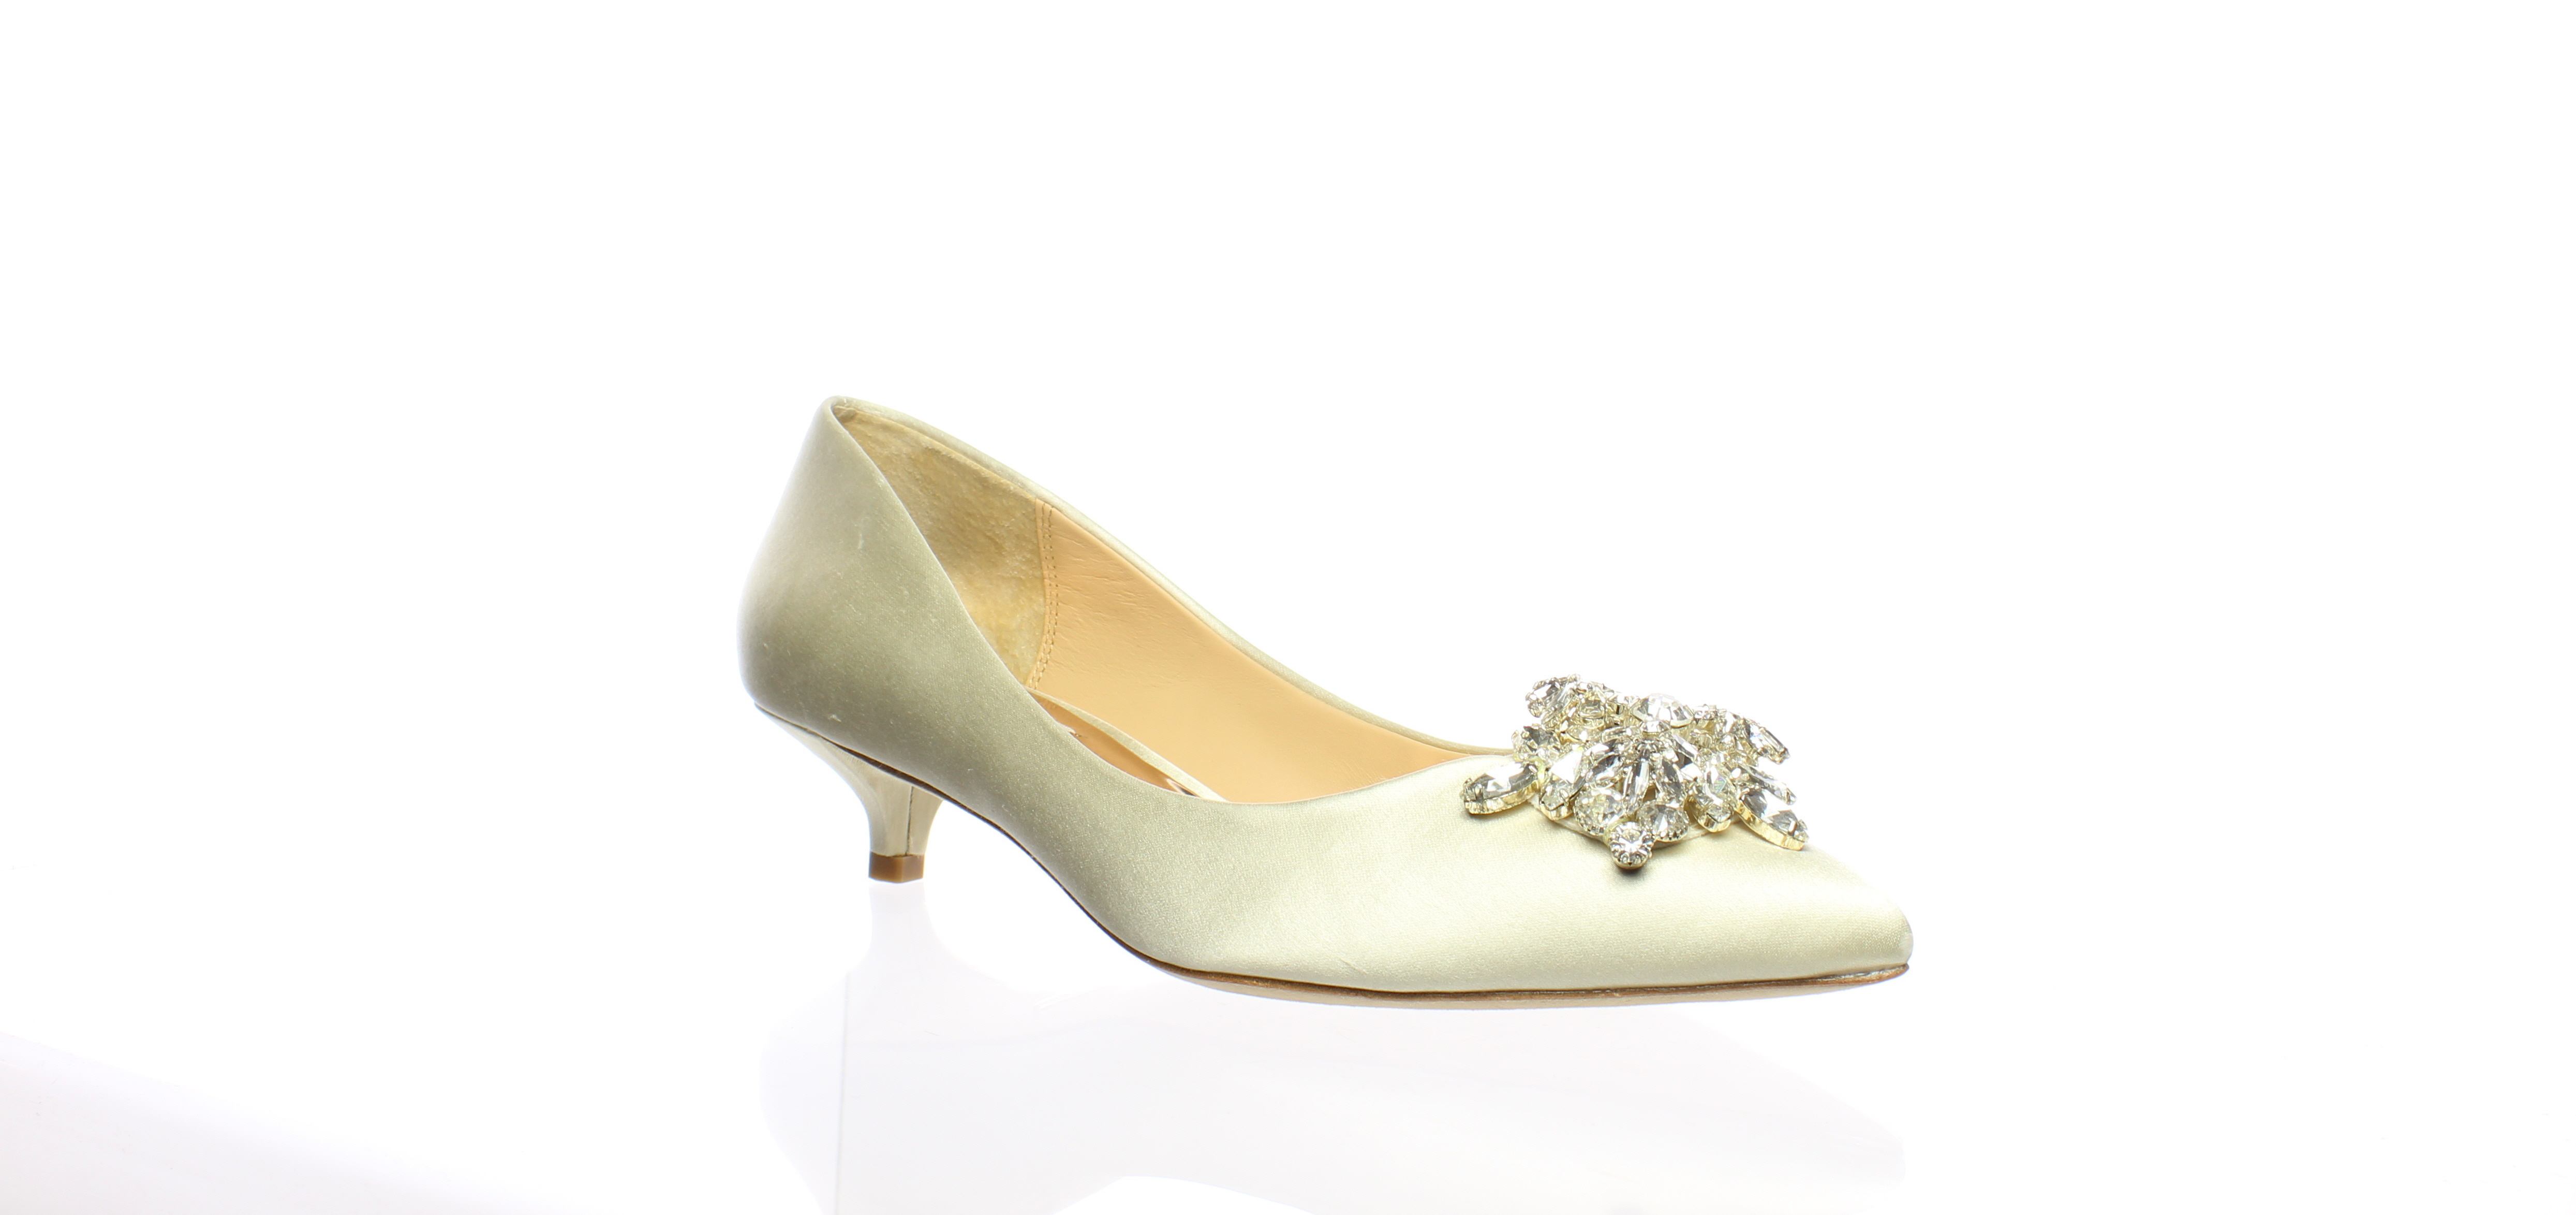 a191daf59f2 Details about Badgley Mischka Womens Vail Ivory Satin Pumps Size 6 (438909)